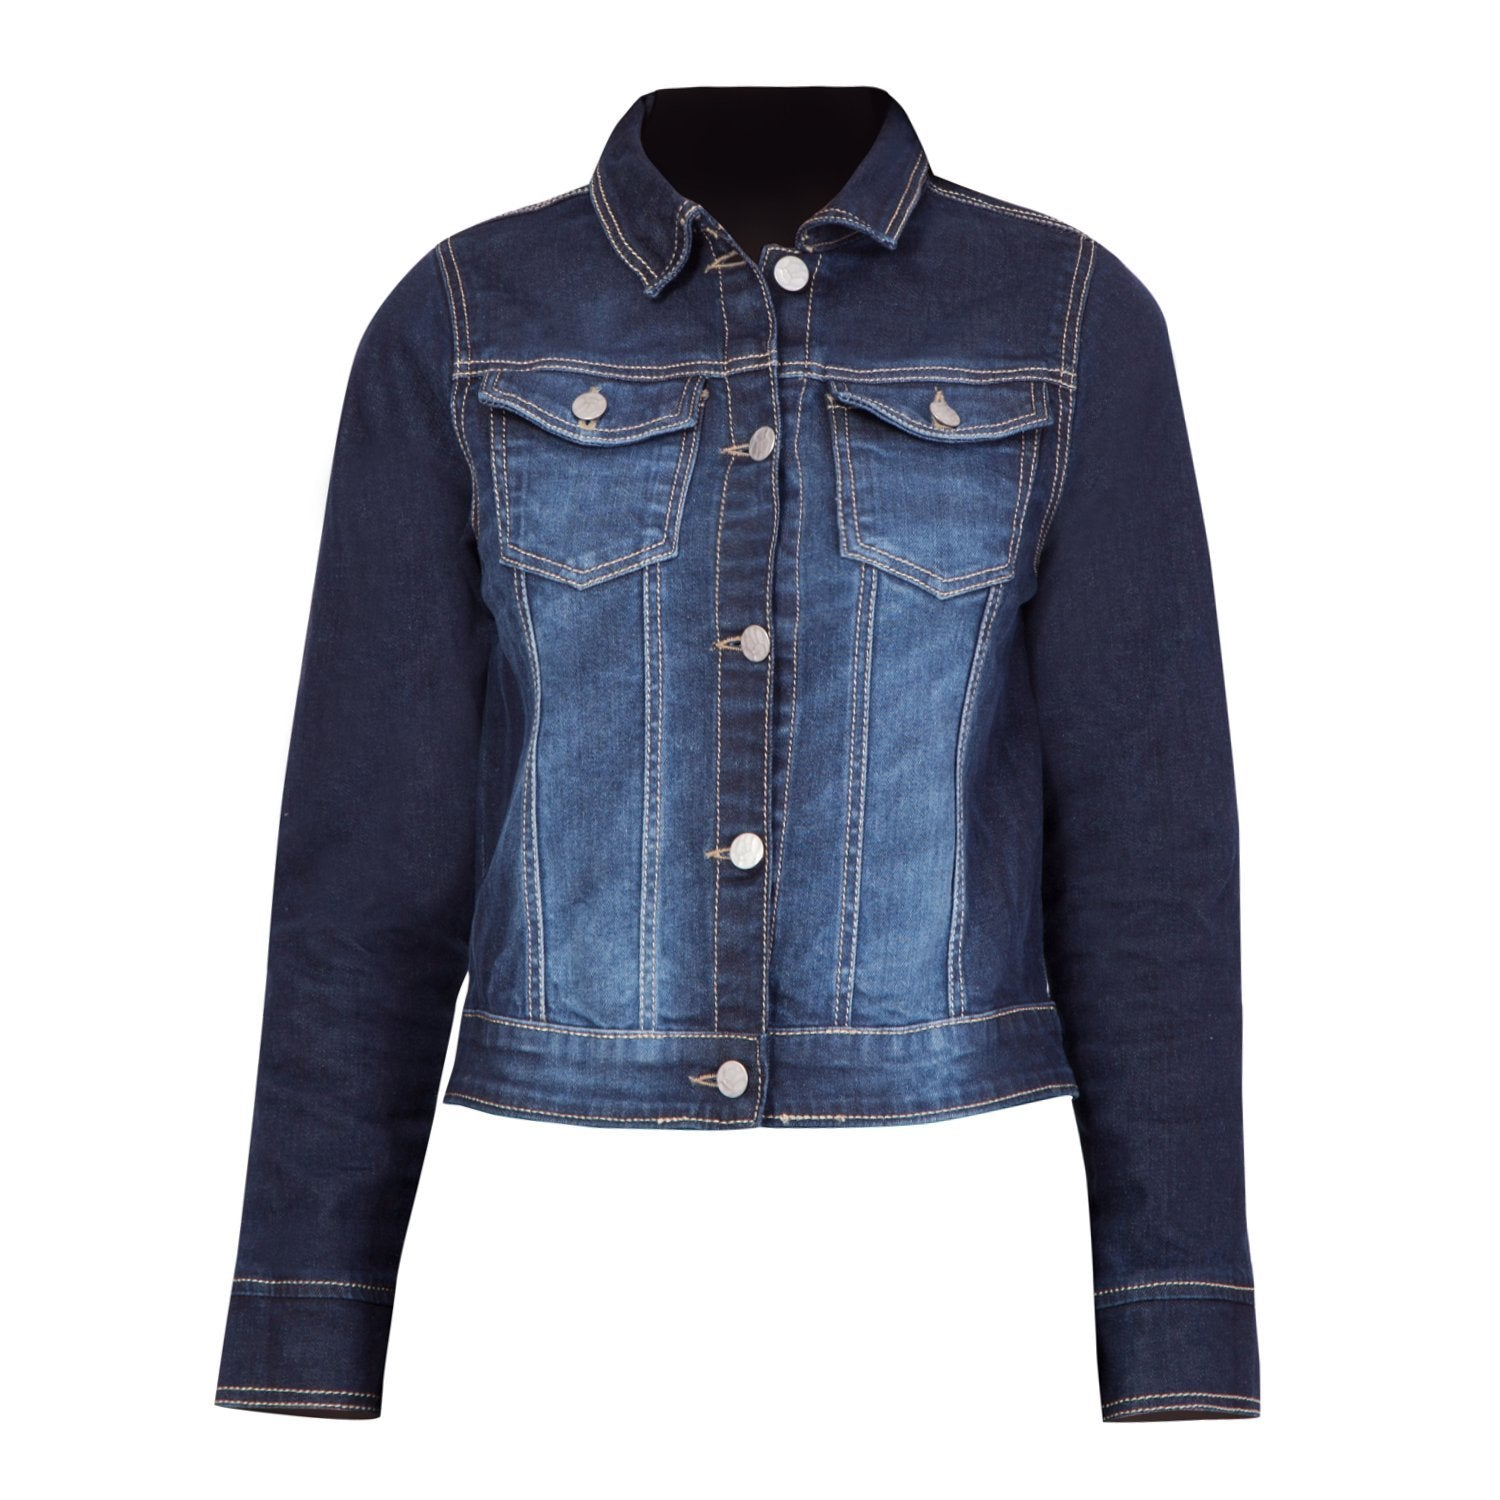 Kopyneko Full Sleeve Short Cropped Denim Jacket for Teenagers | Girls Age 12 to 16 Years | Winter Wear